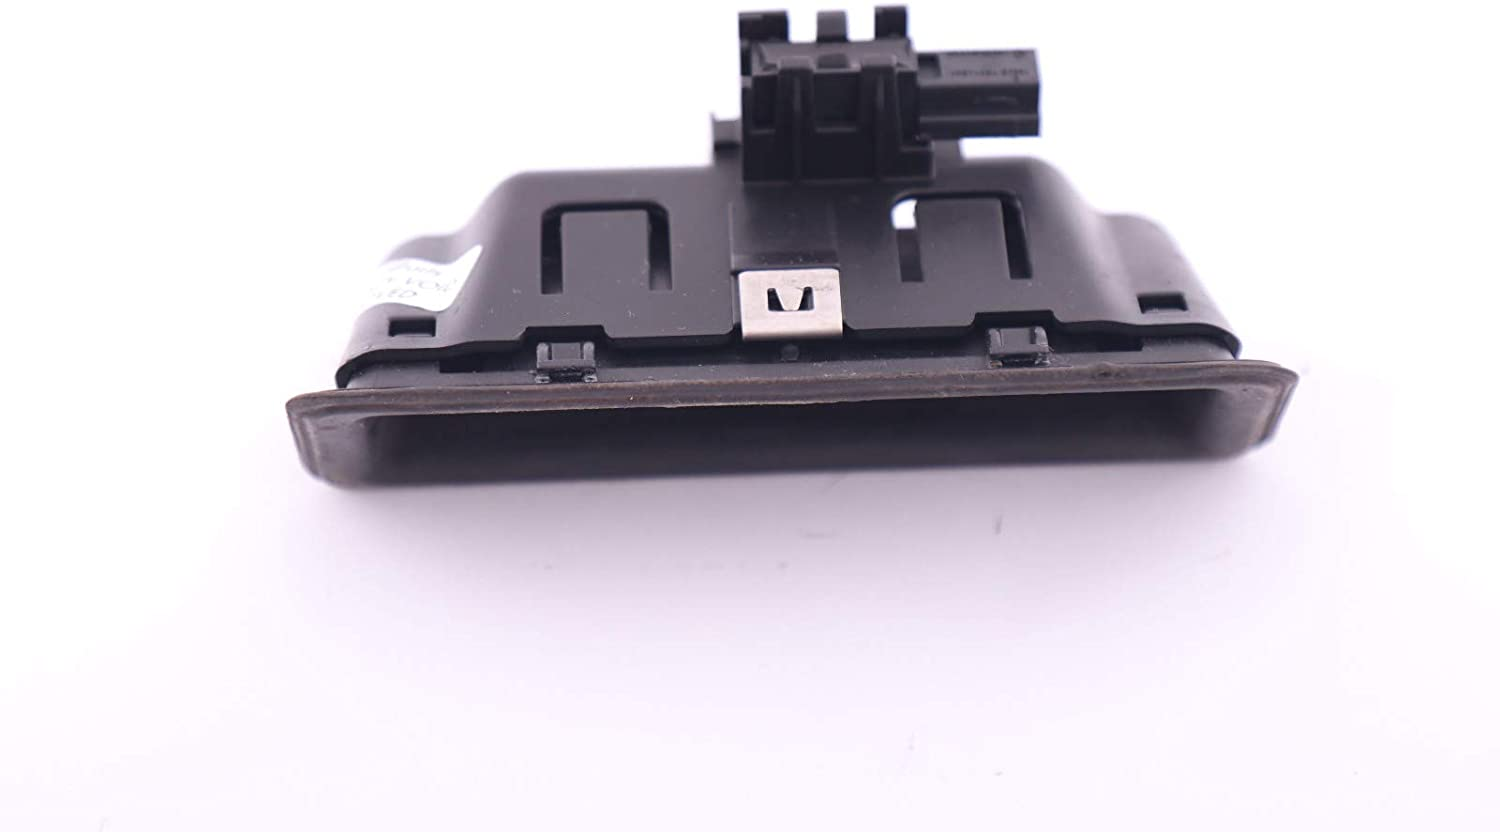 BMW safety 51-24-7-118-158 Boot Pushbutton Max 68% OFF Lid Tailgate